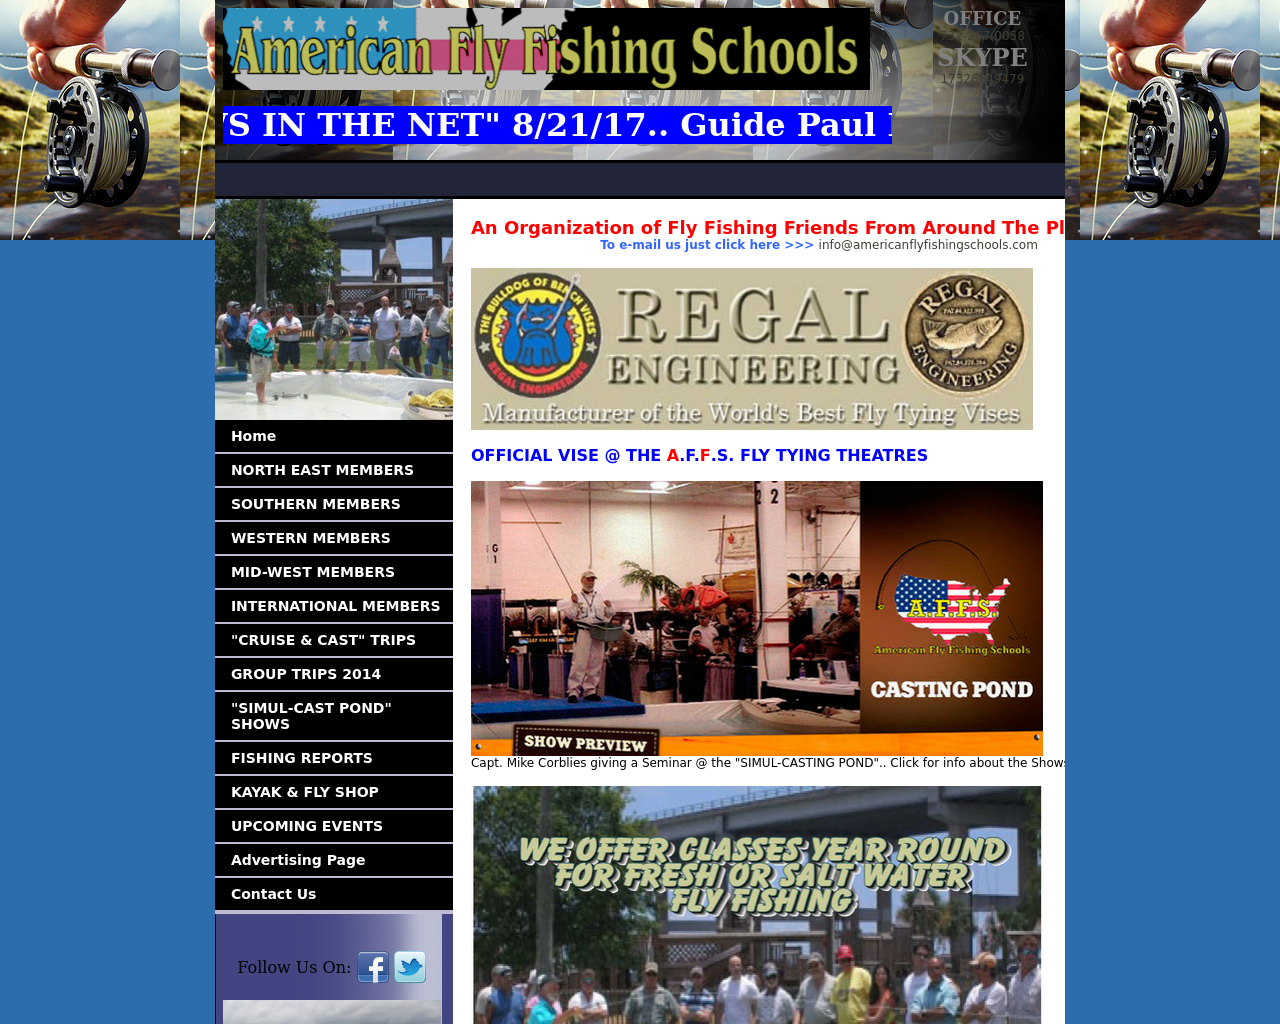 American-Fly-Fishing-Schools-.com-Advertising-Reviews-Pricing